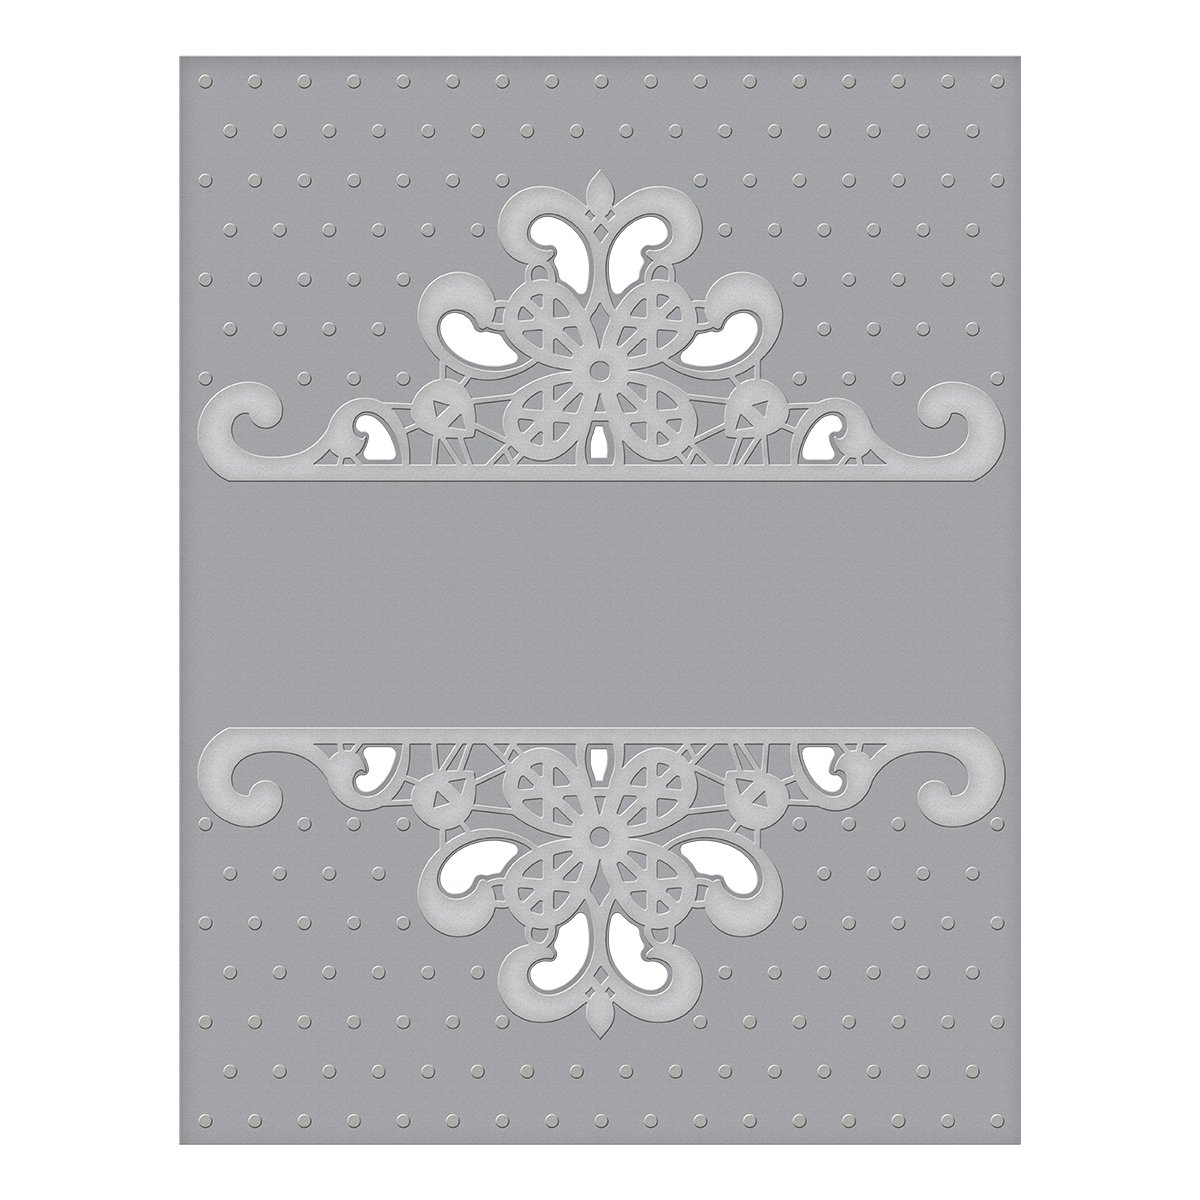 Spellbinders CEF-007 Dotted Lace Cut and Emboss Folder